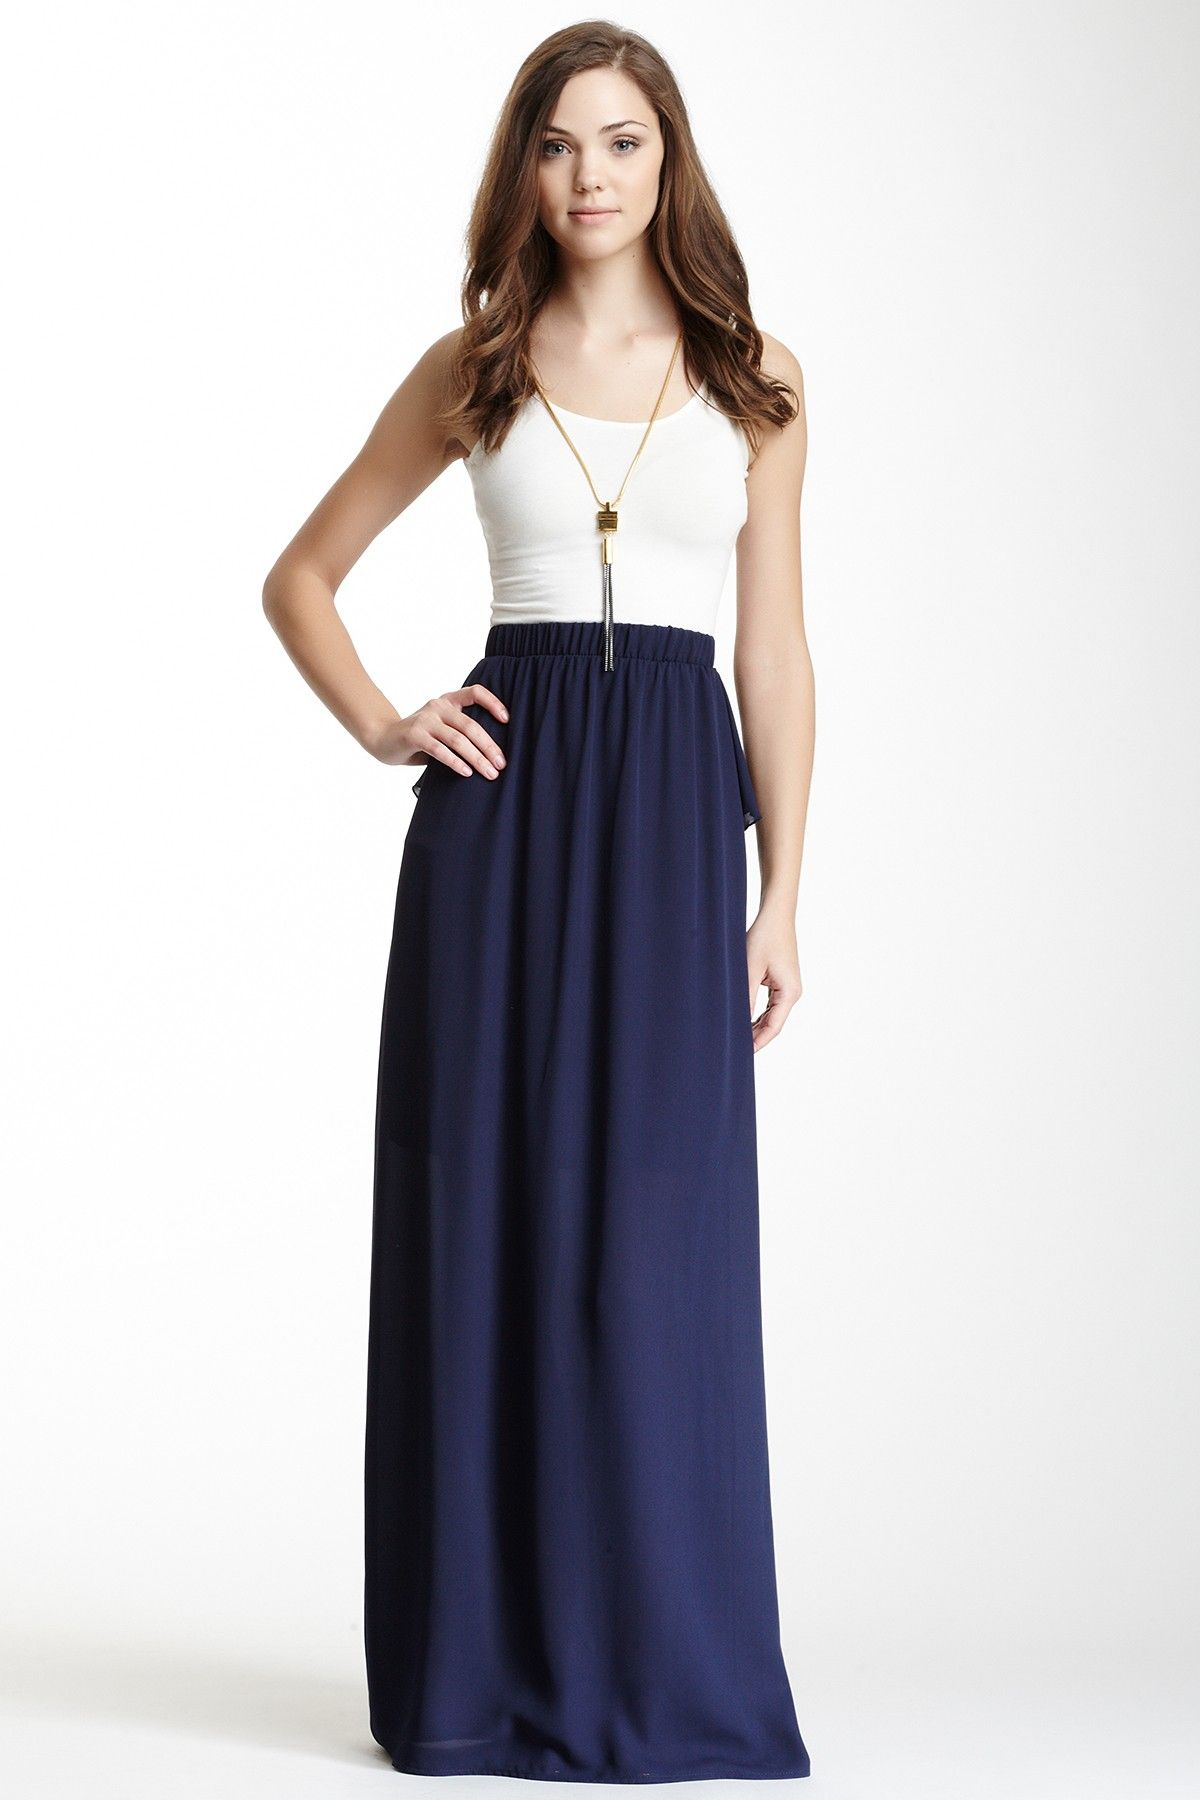 Just Skirts And Dresses Inspiration: White Top With Blue Maxi Skirt And Tassel Necklace